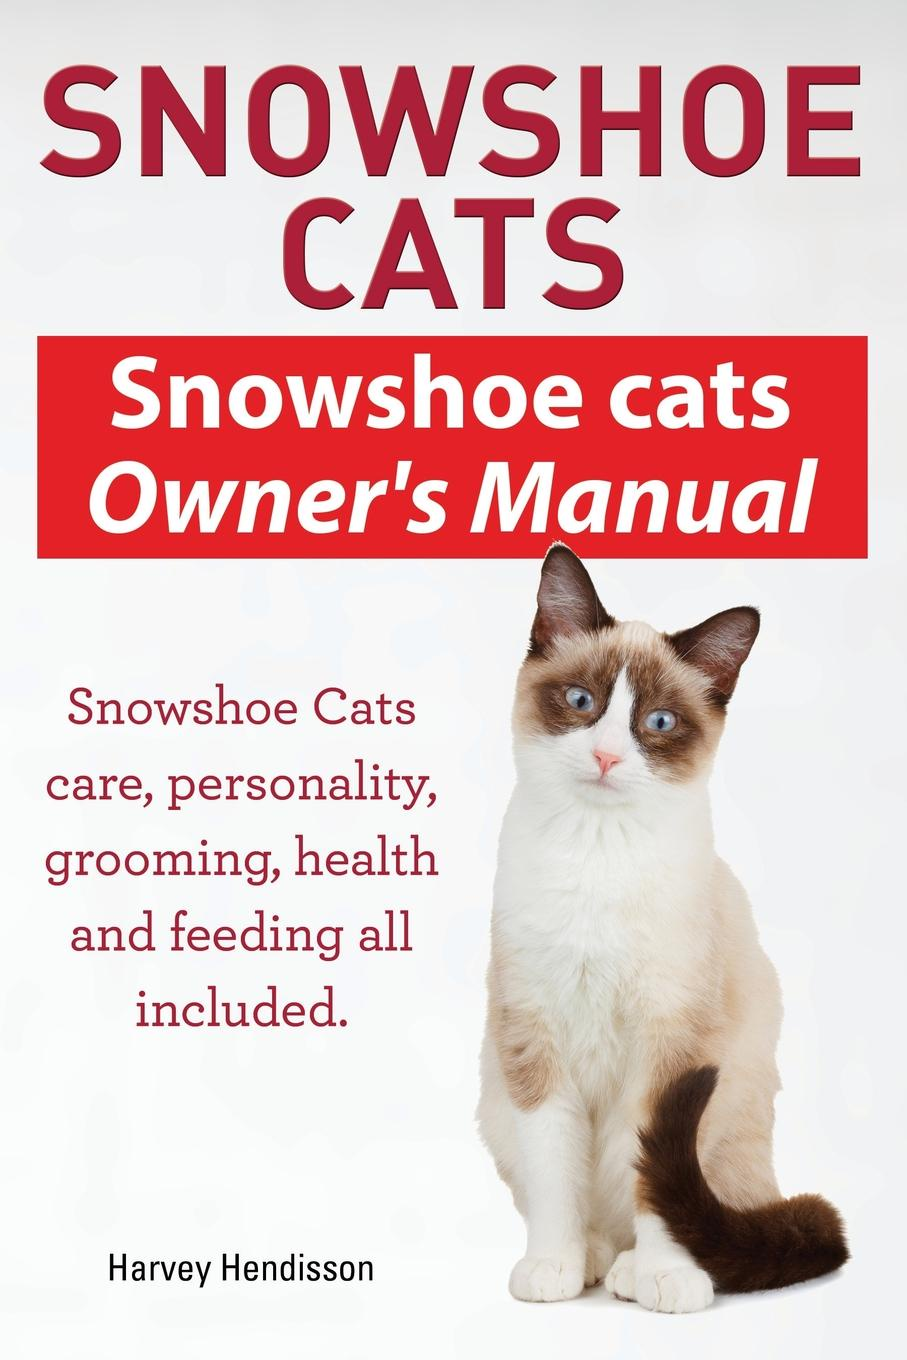 Harvey Hendisson Snowshoe Cats. Snowshoe Cats Owner's Manual. Snowshoe Cats Care, Personality, Grooming, Feeding and Health All Included. цена в Москве и Питере